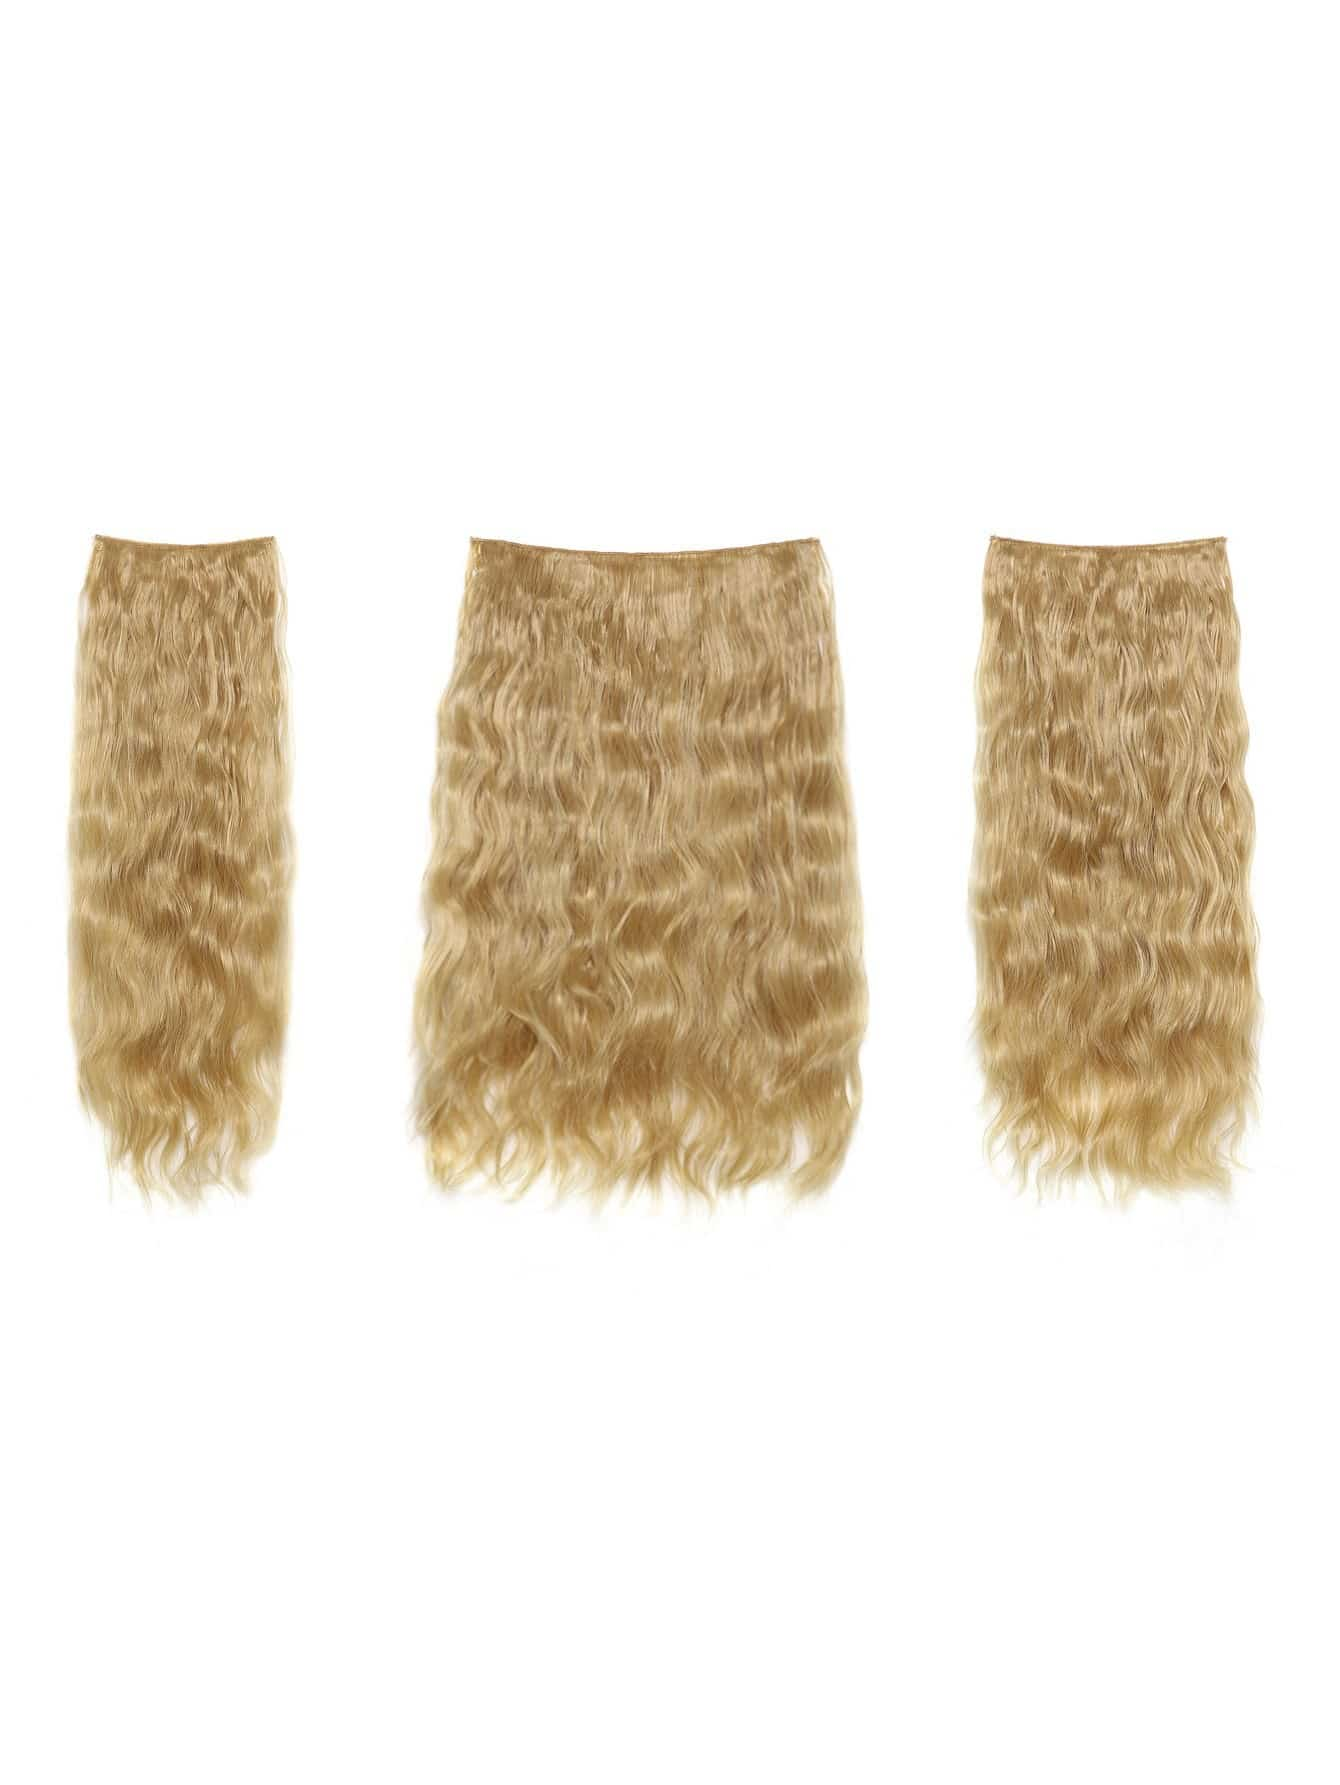 Golden Blonde Clip In Curly Hair Extension 3pcs